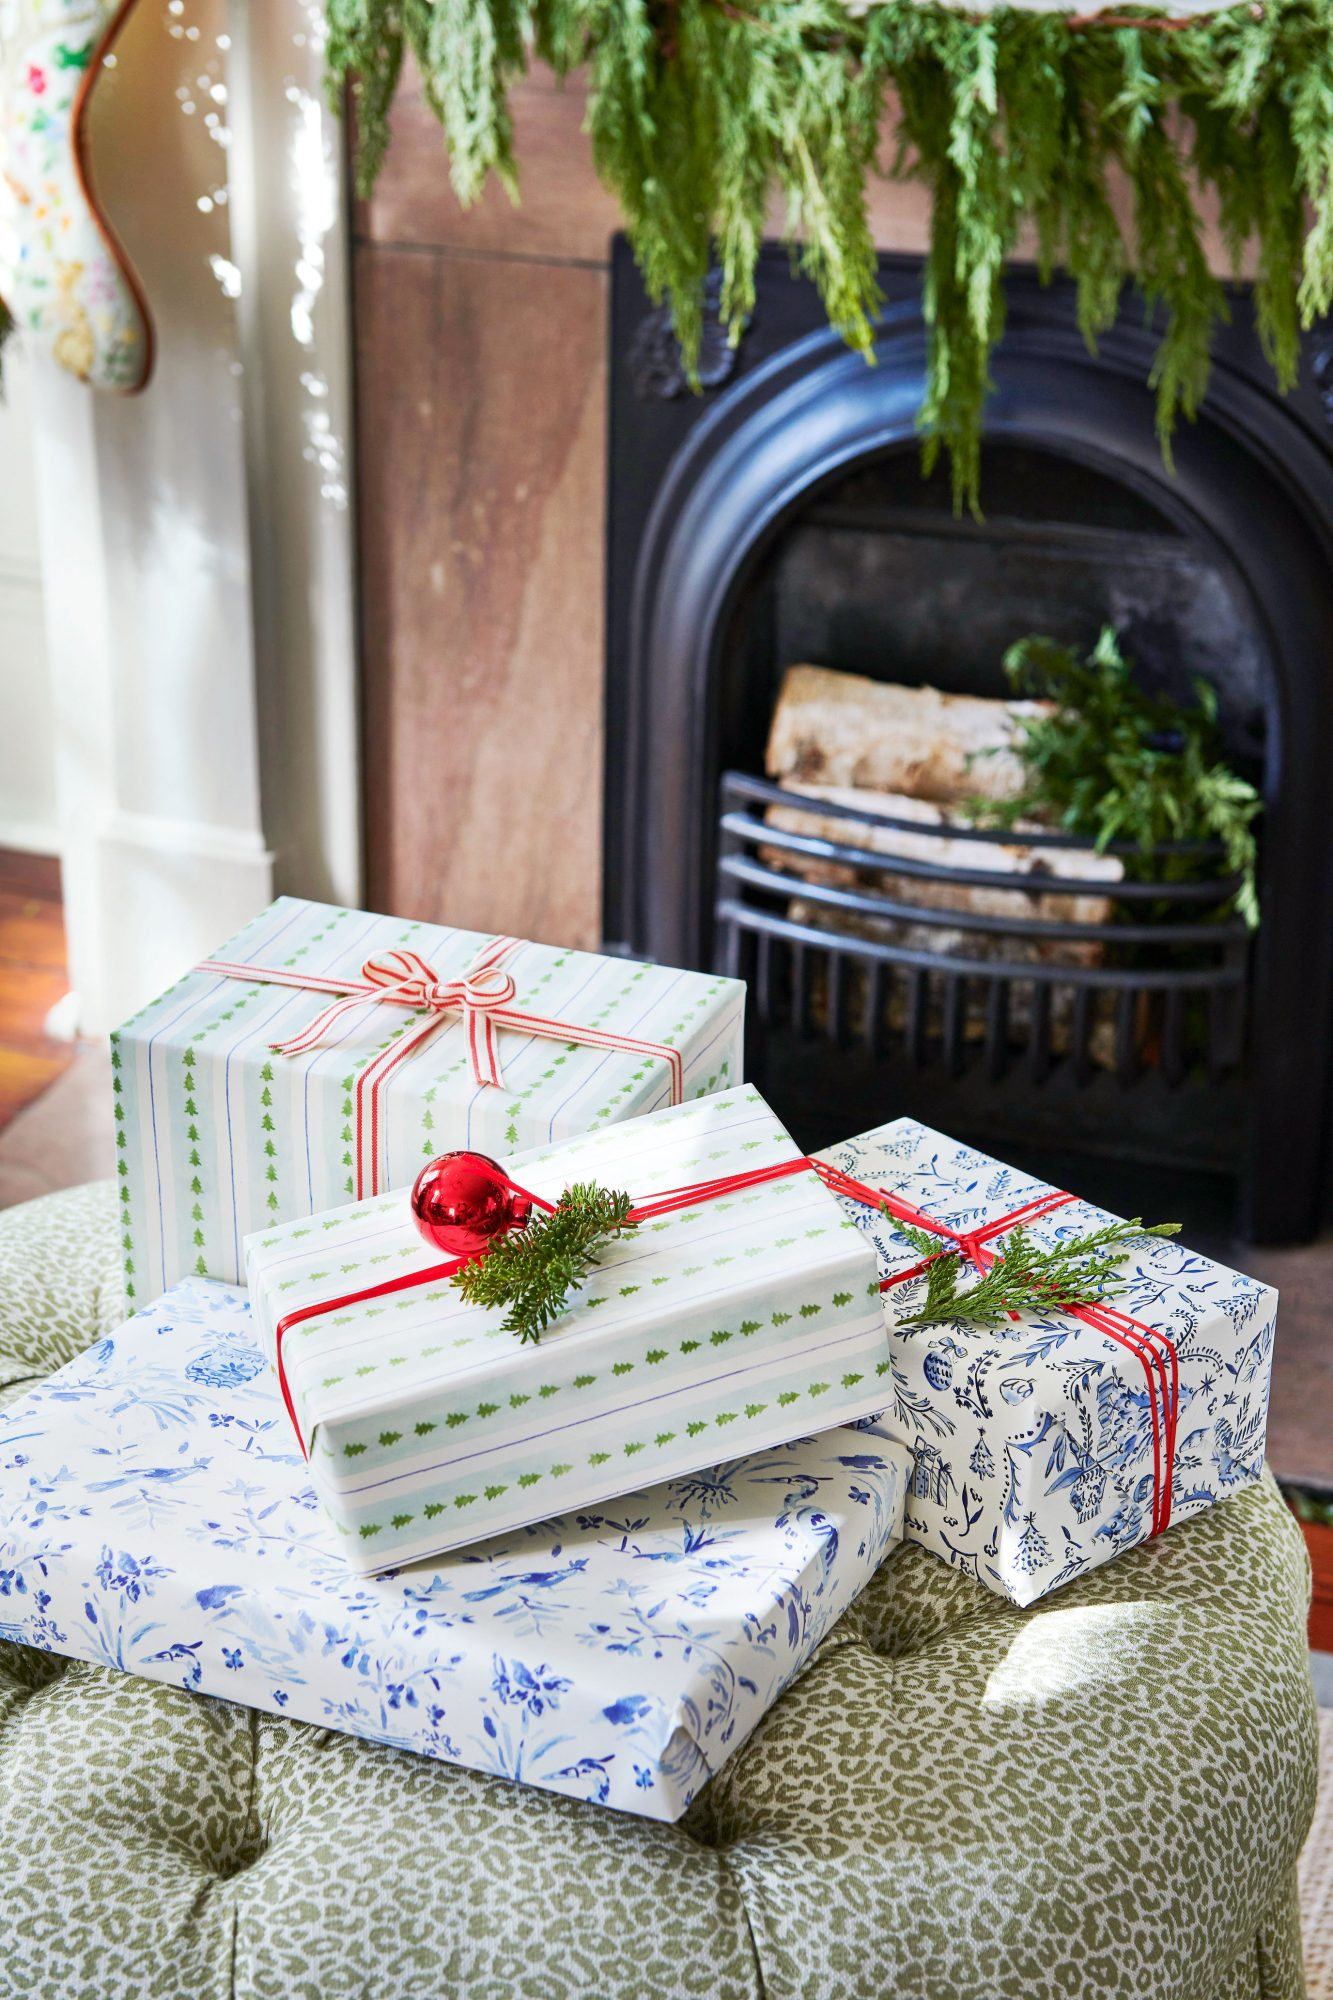 Christmas presents wrapped in green and blue paper with red ribbon.